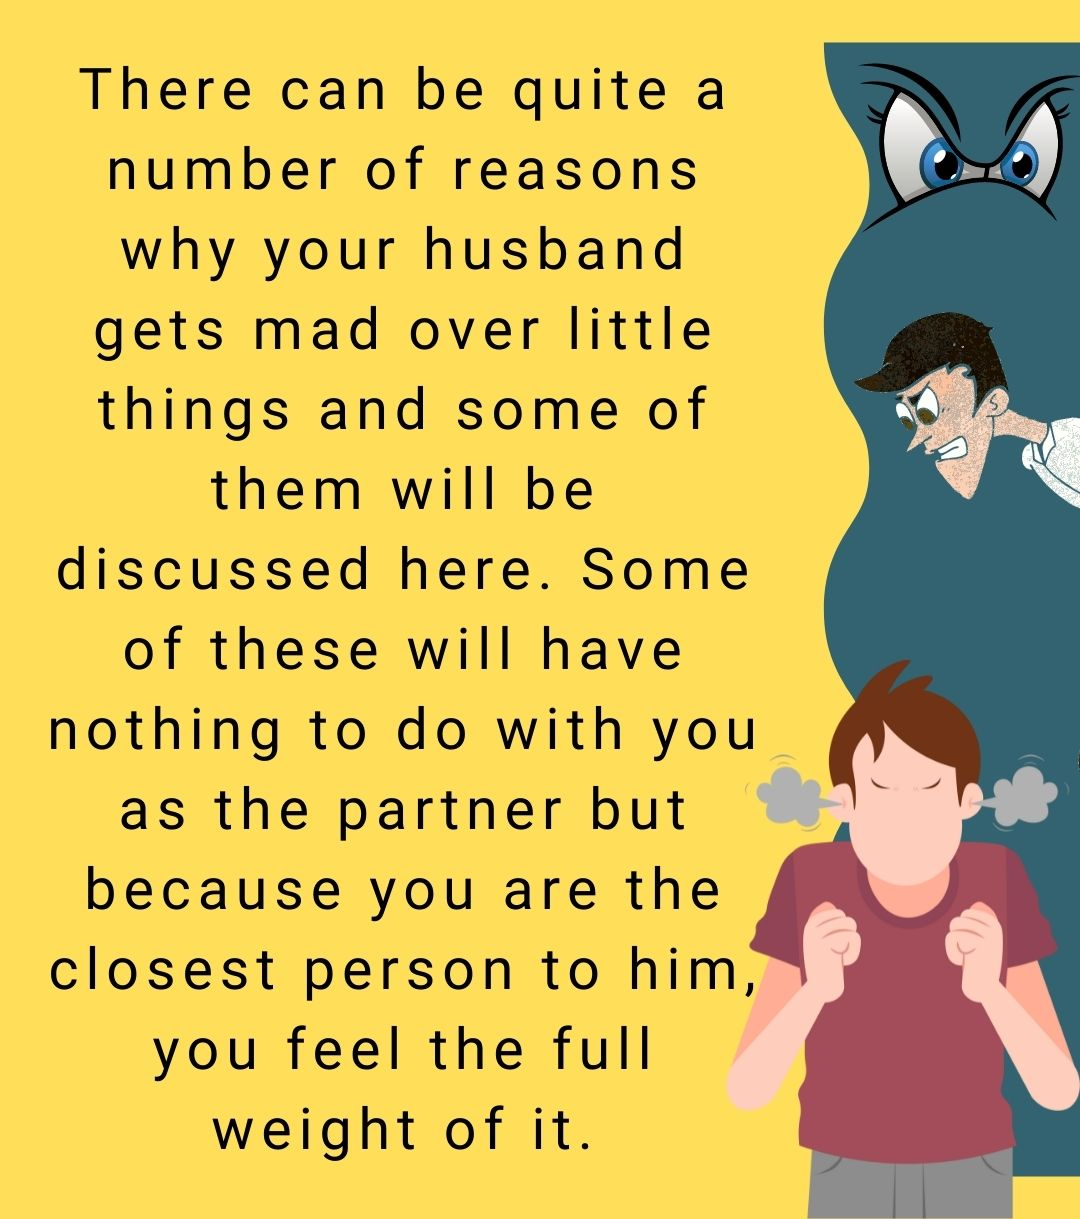 There can be quite a number of reasons why your husband gets mad over little things and some of them will be discussed here. Some of these will have nothing to do with you as the partner but because you are the closest person to him, you feel the full weight of it.